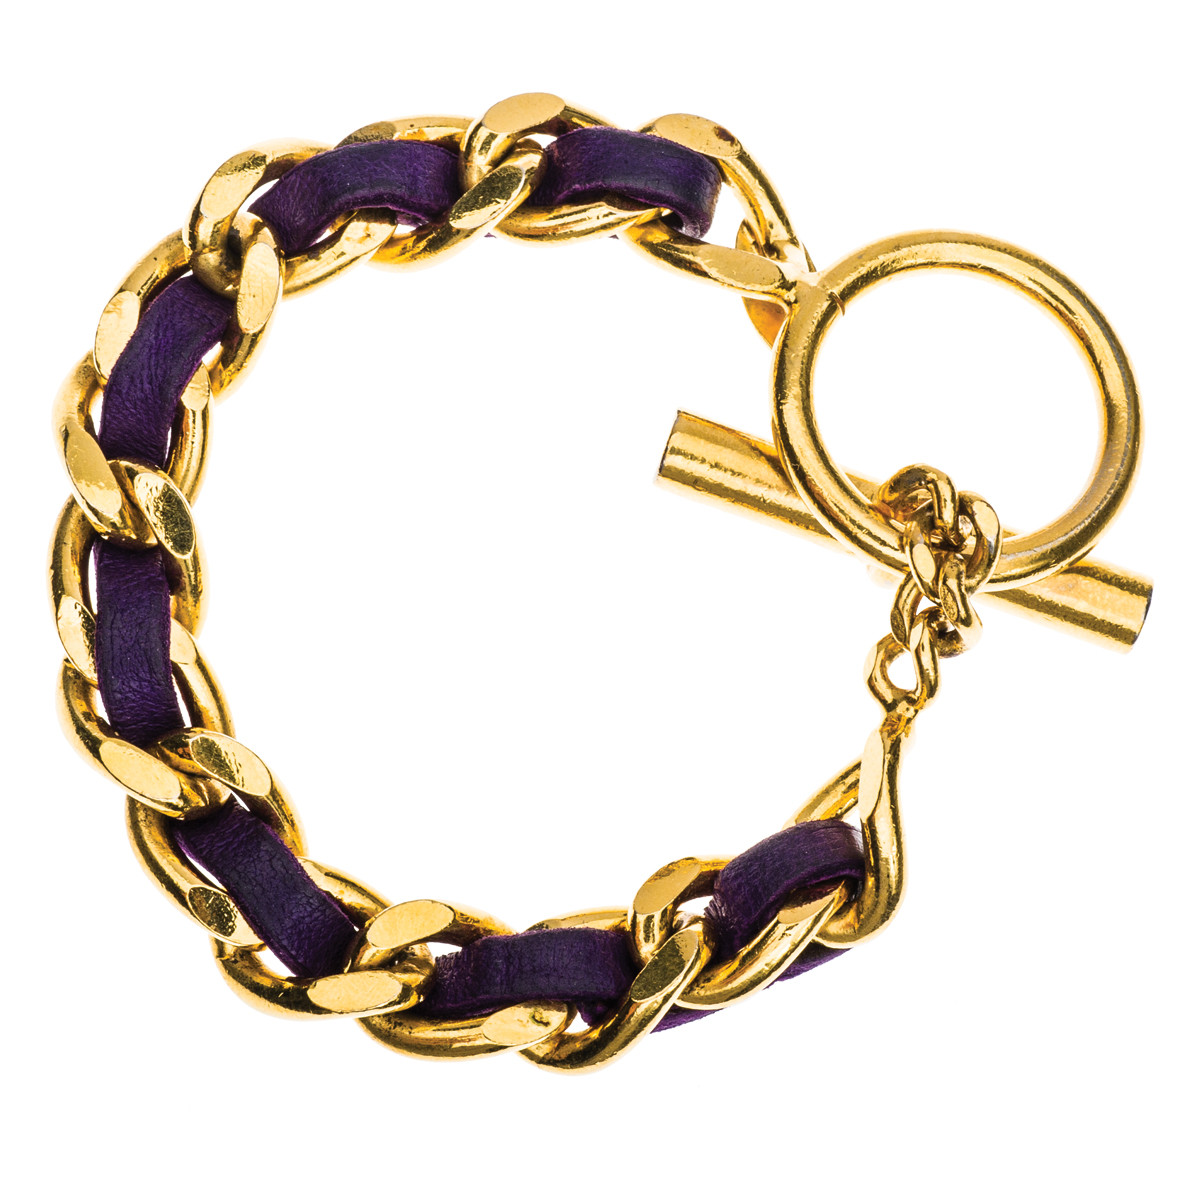 Vintage Chanel Purple Lambskin and Gold Plated Toggle Bracelet